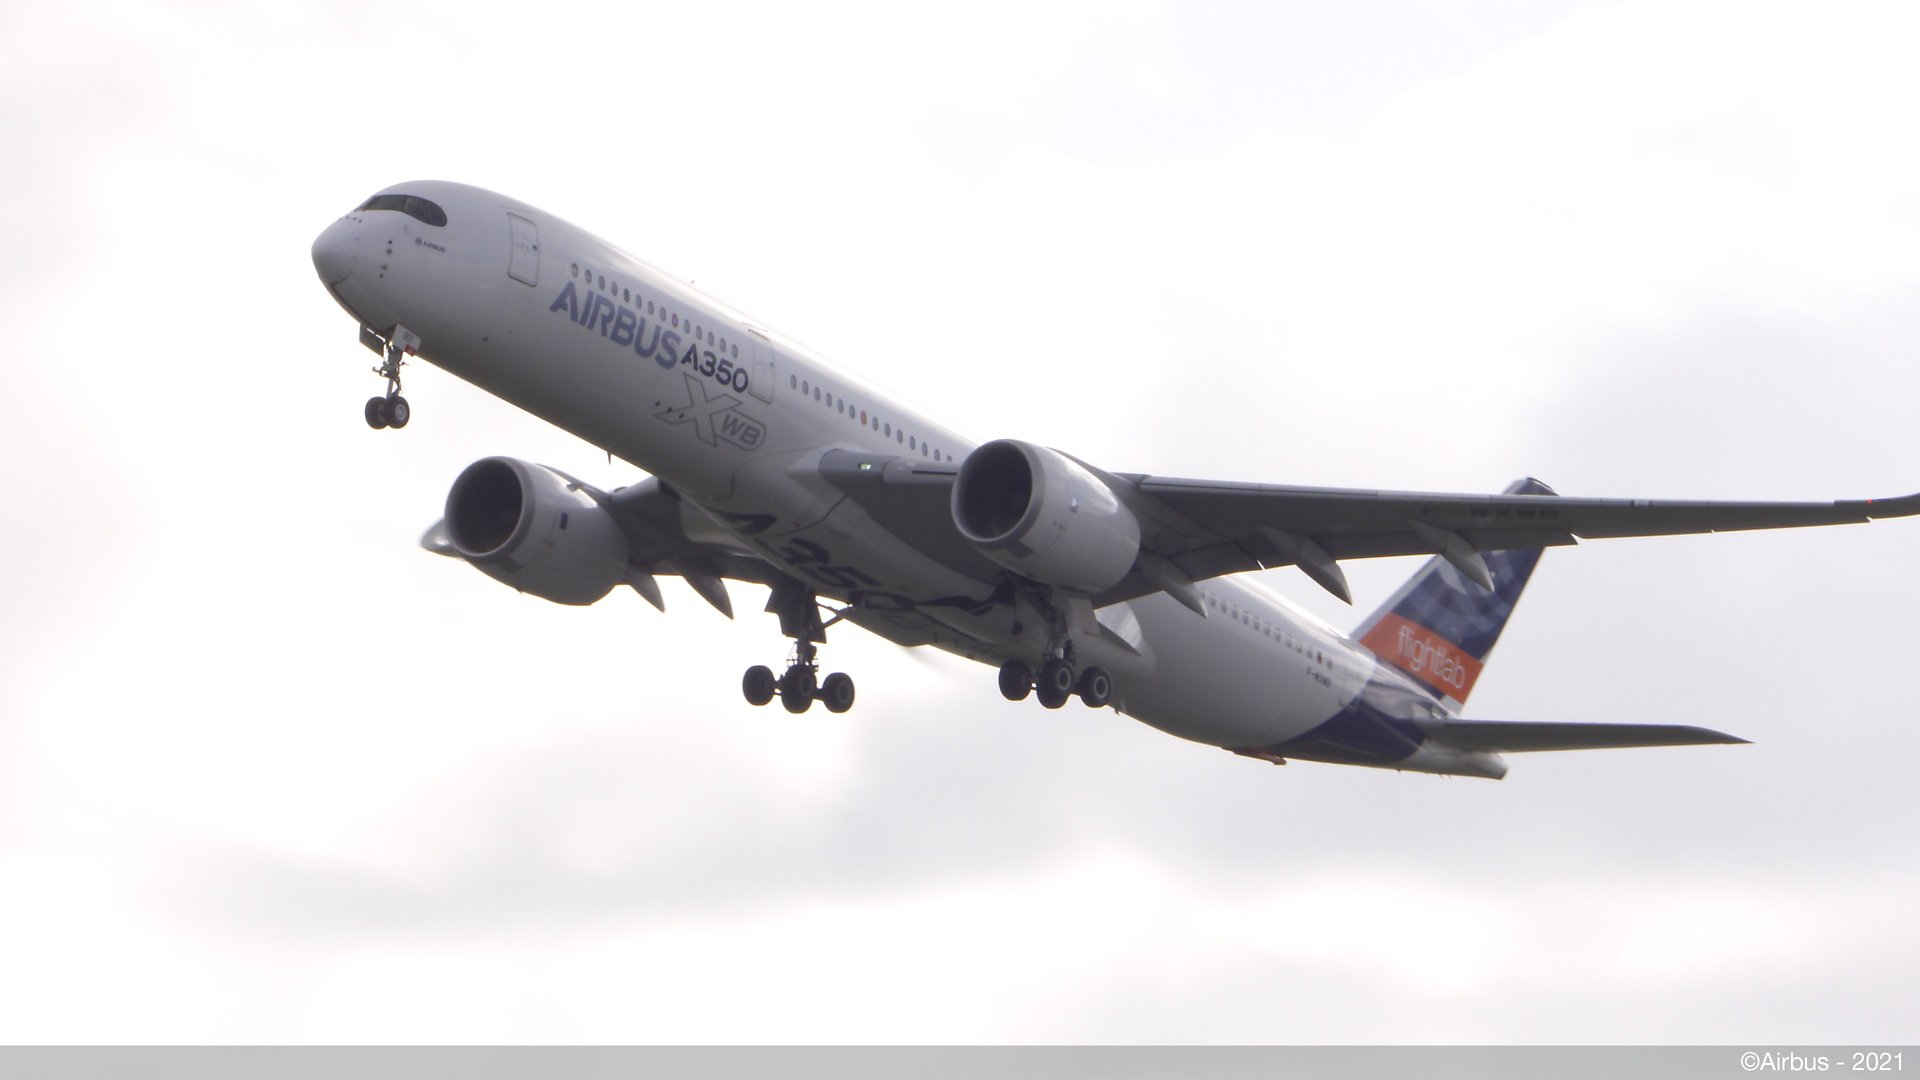 An A350 fuelled by 100% SAF just took off